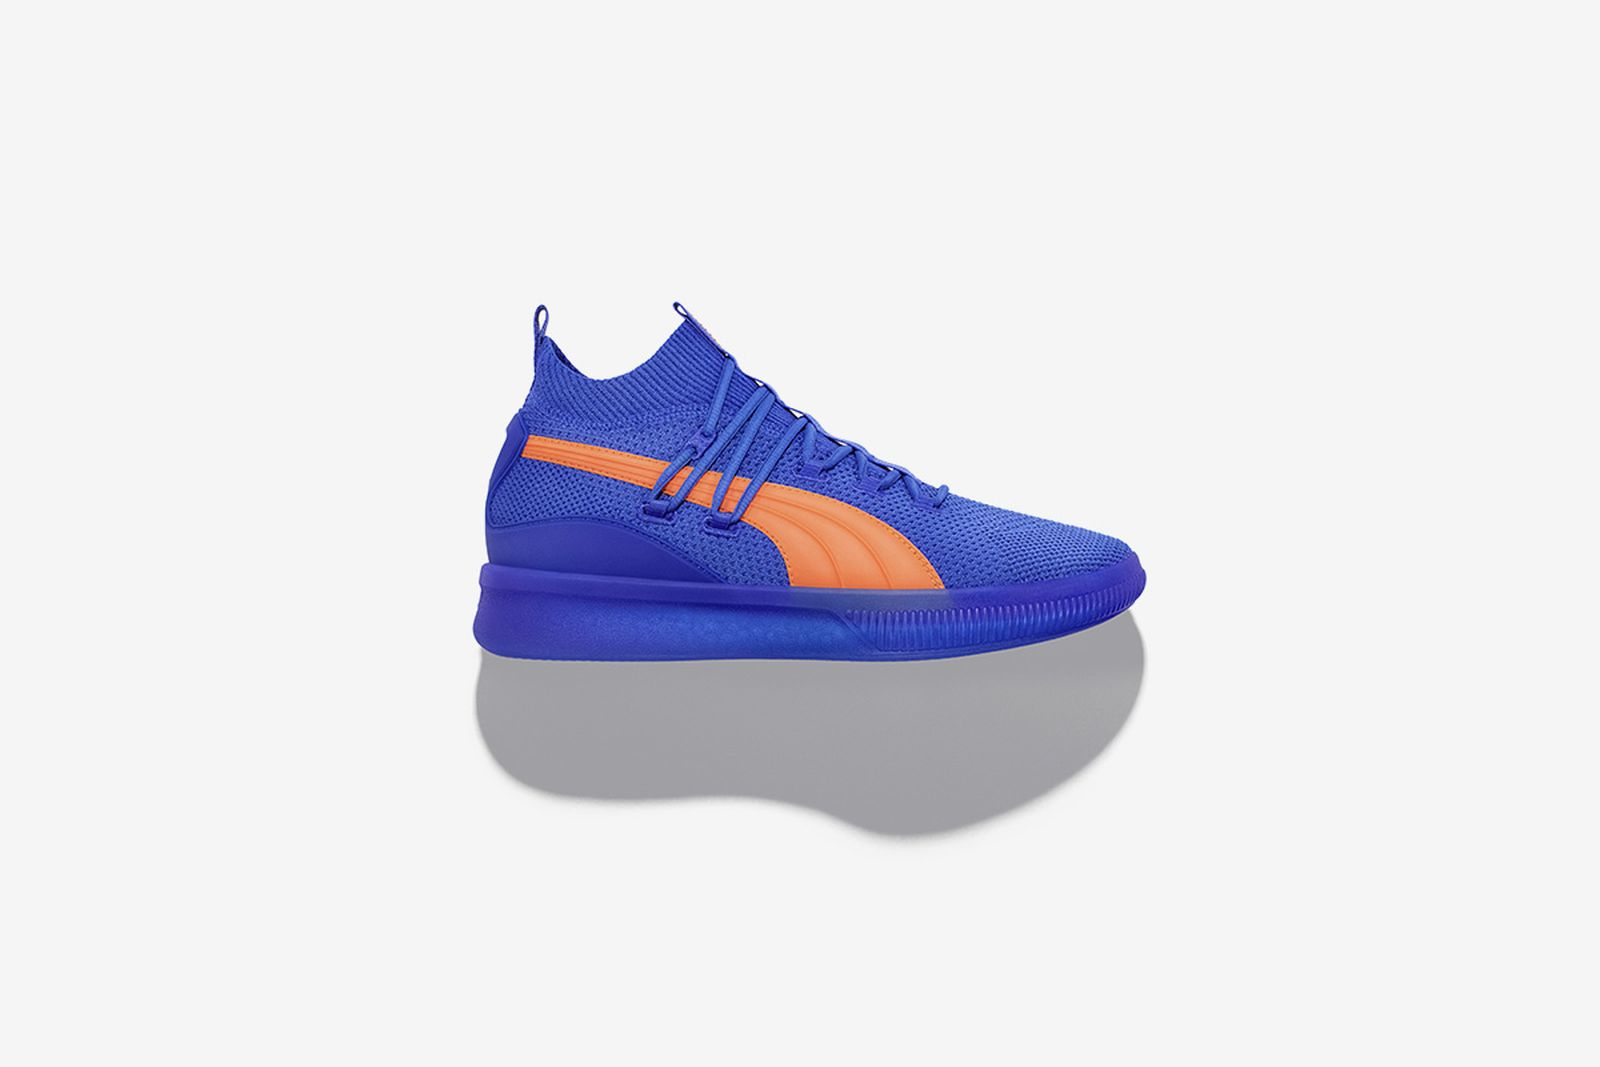 puma clyde court city pack release date price